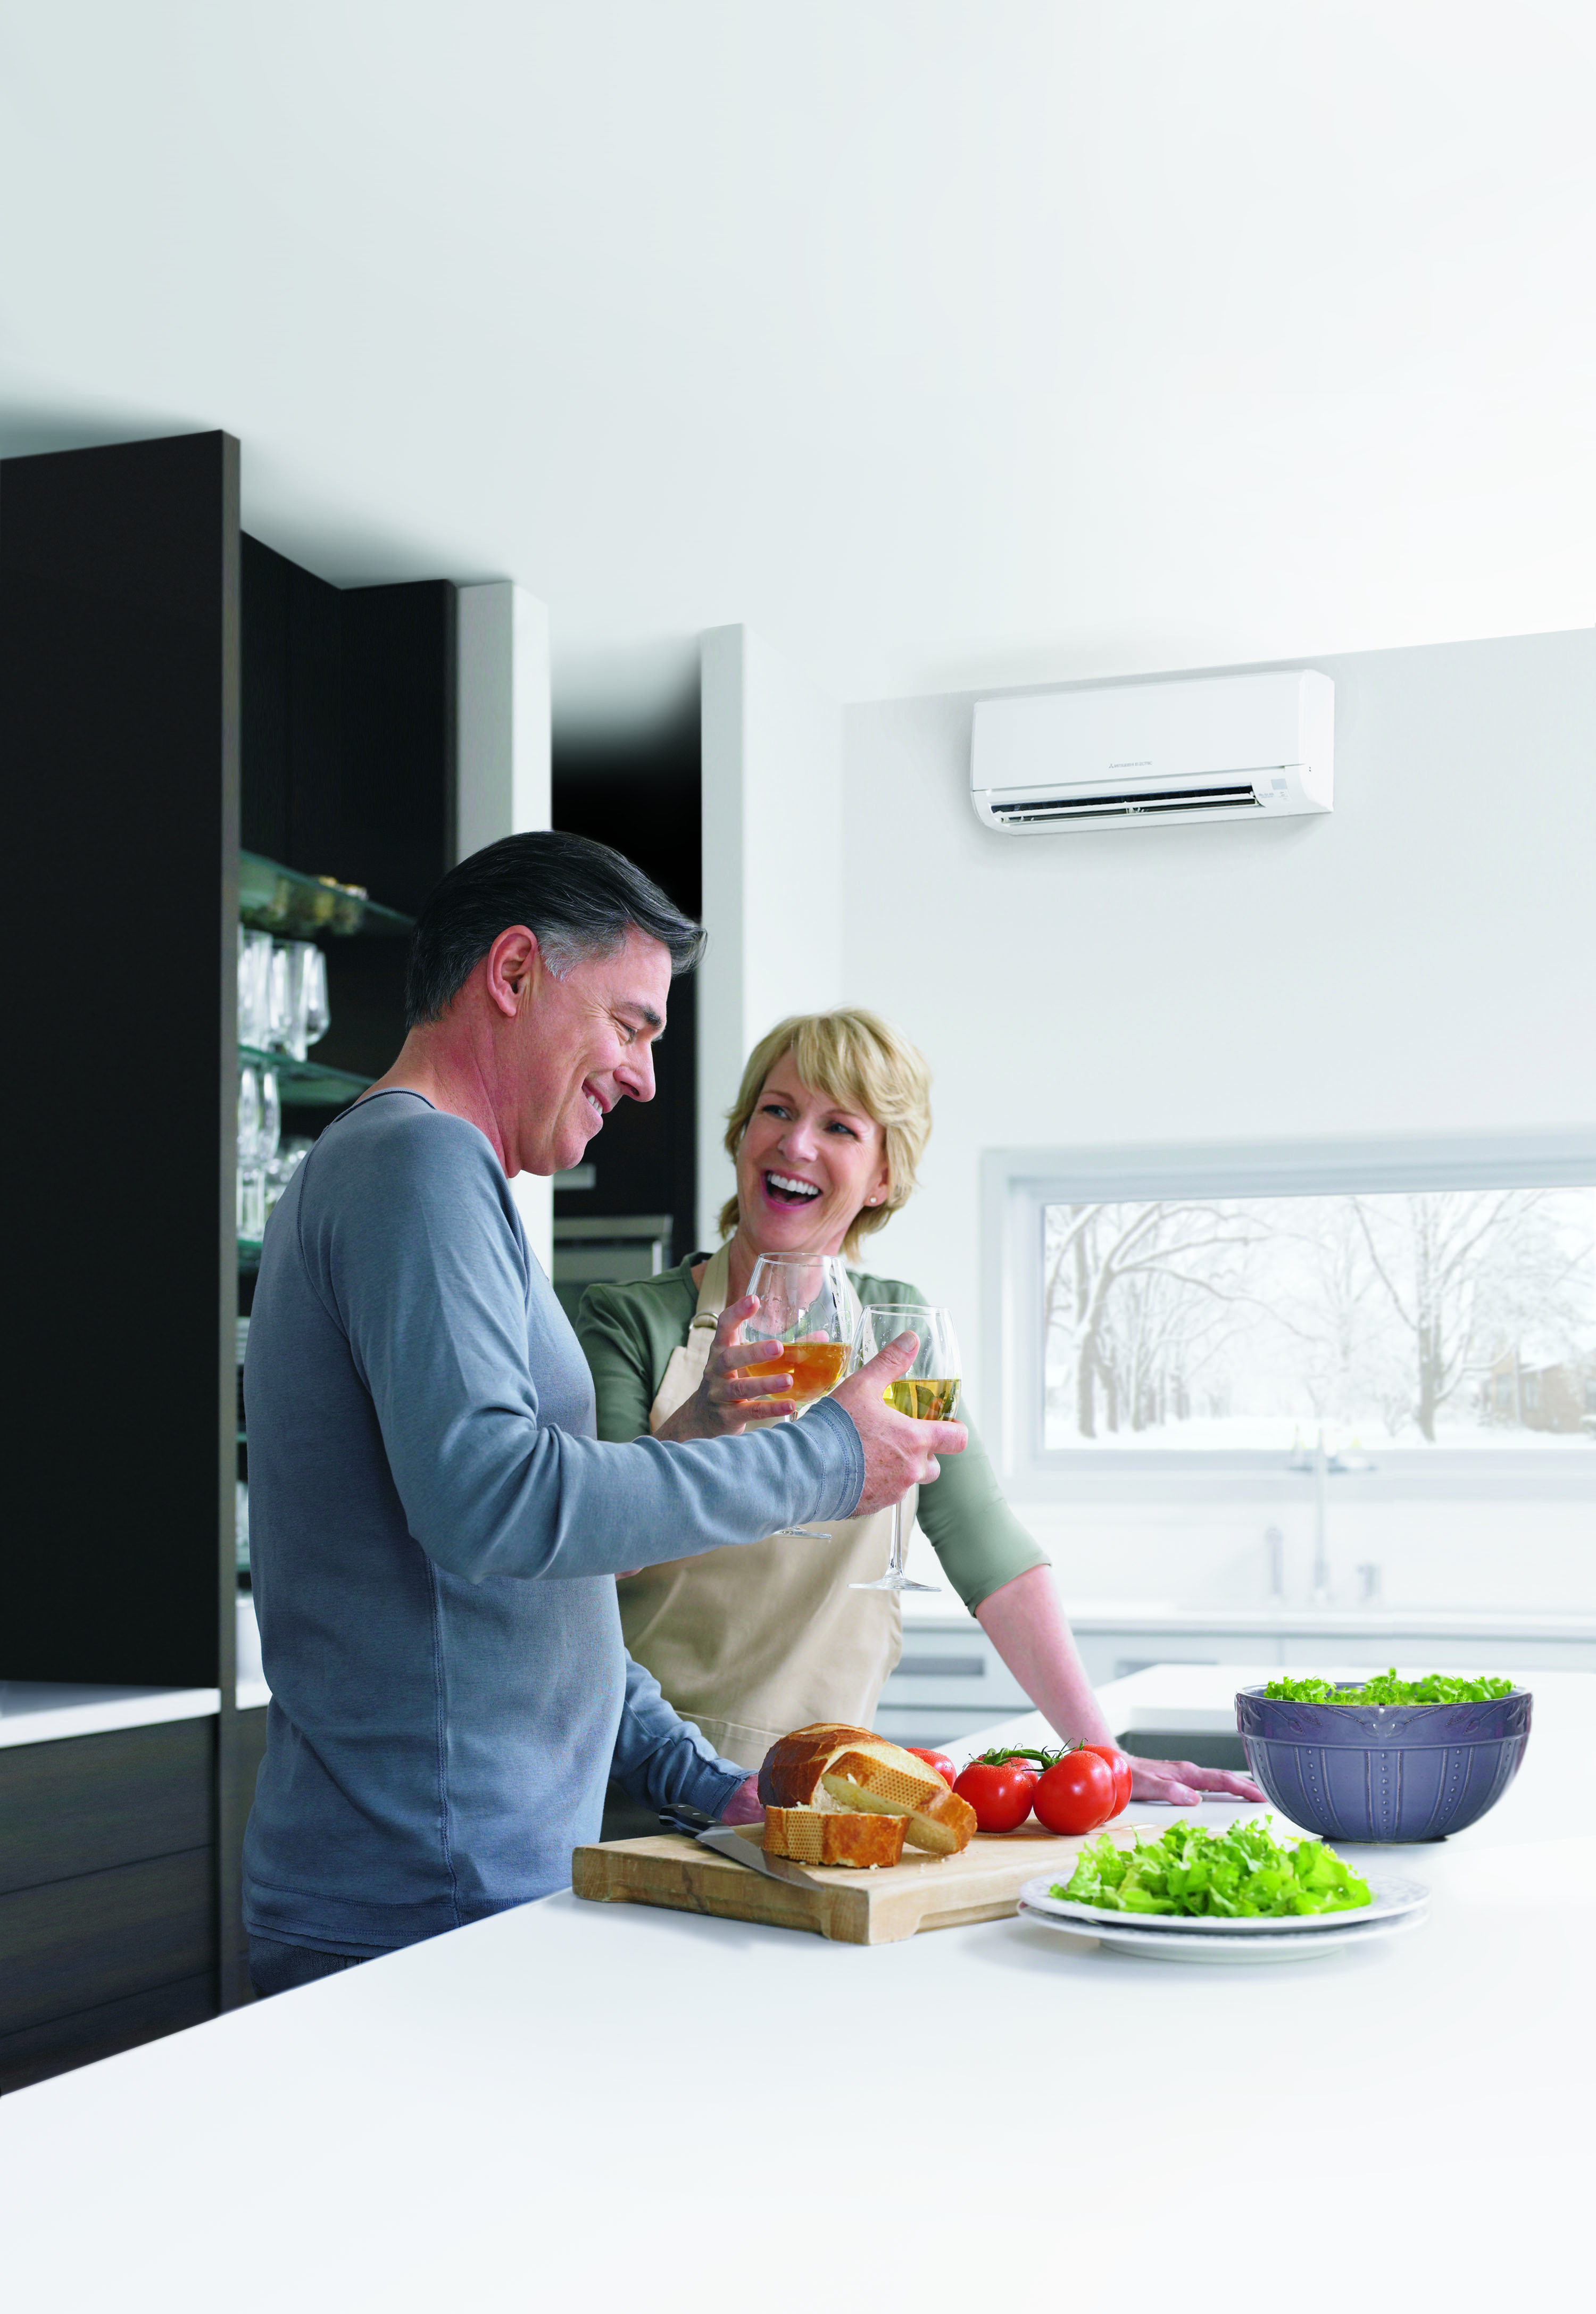 #975B34 Don't Miss This Mitsubishi Electric Systems Instant Rebate  Most Effective 8415 Air Conditioning Contractors Gold Coast pictures with 3000x4350 px on helpvideos.info - Air Conditioners, Air Coolers and more